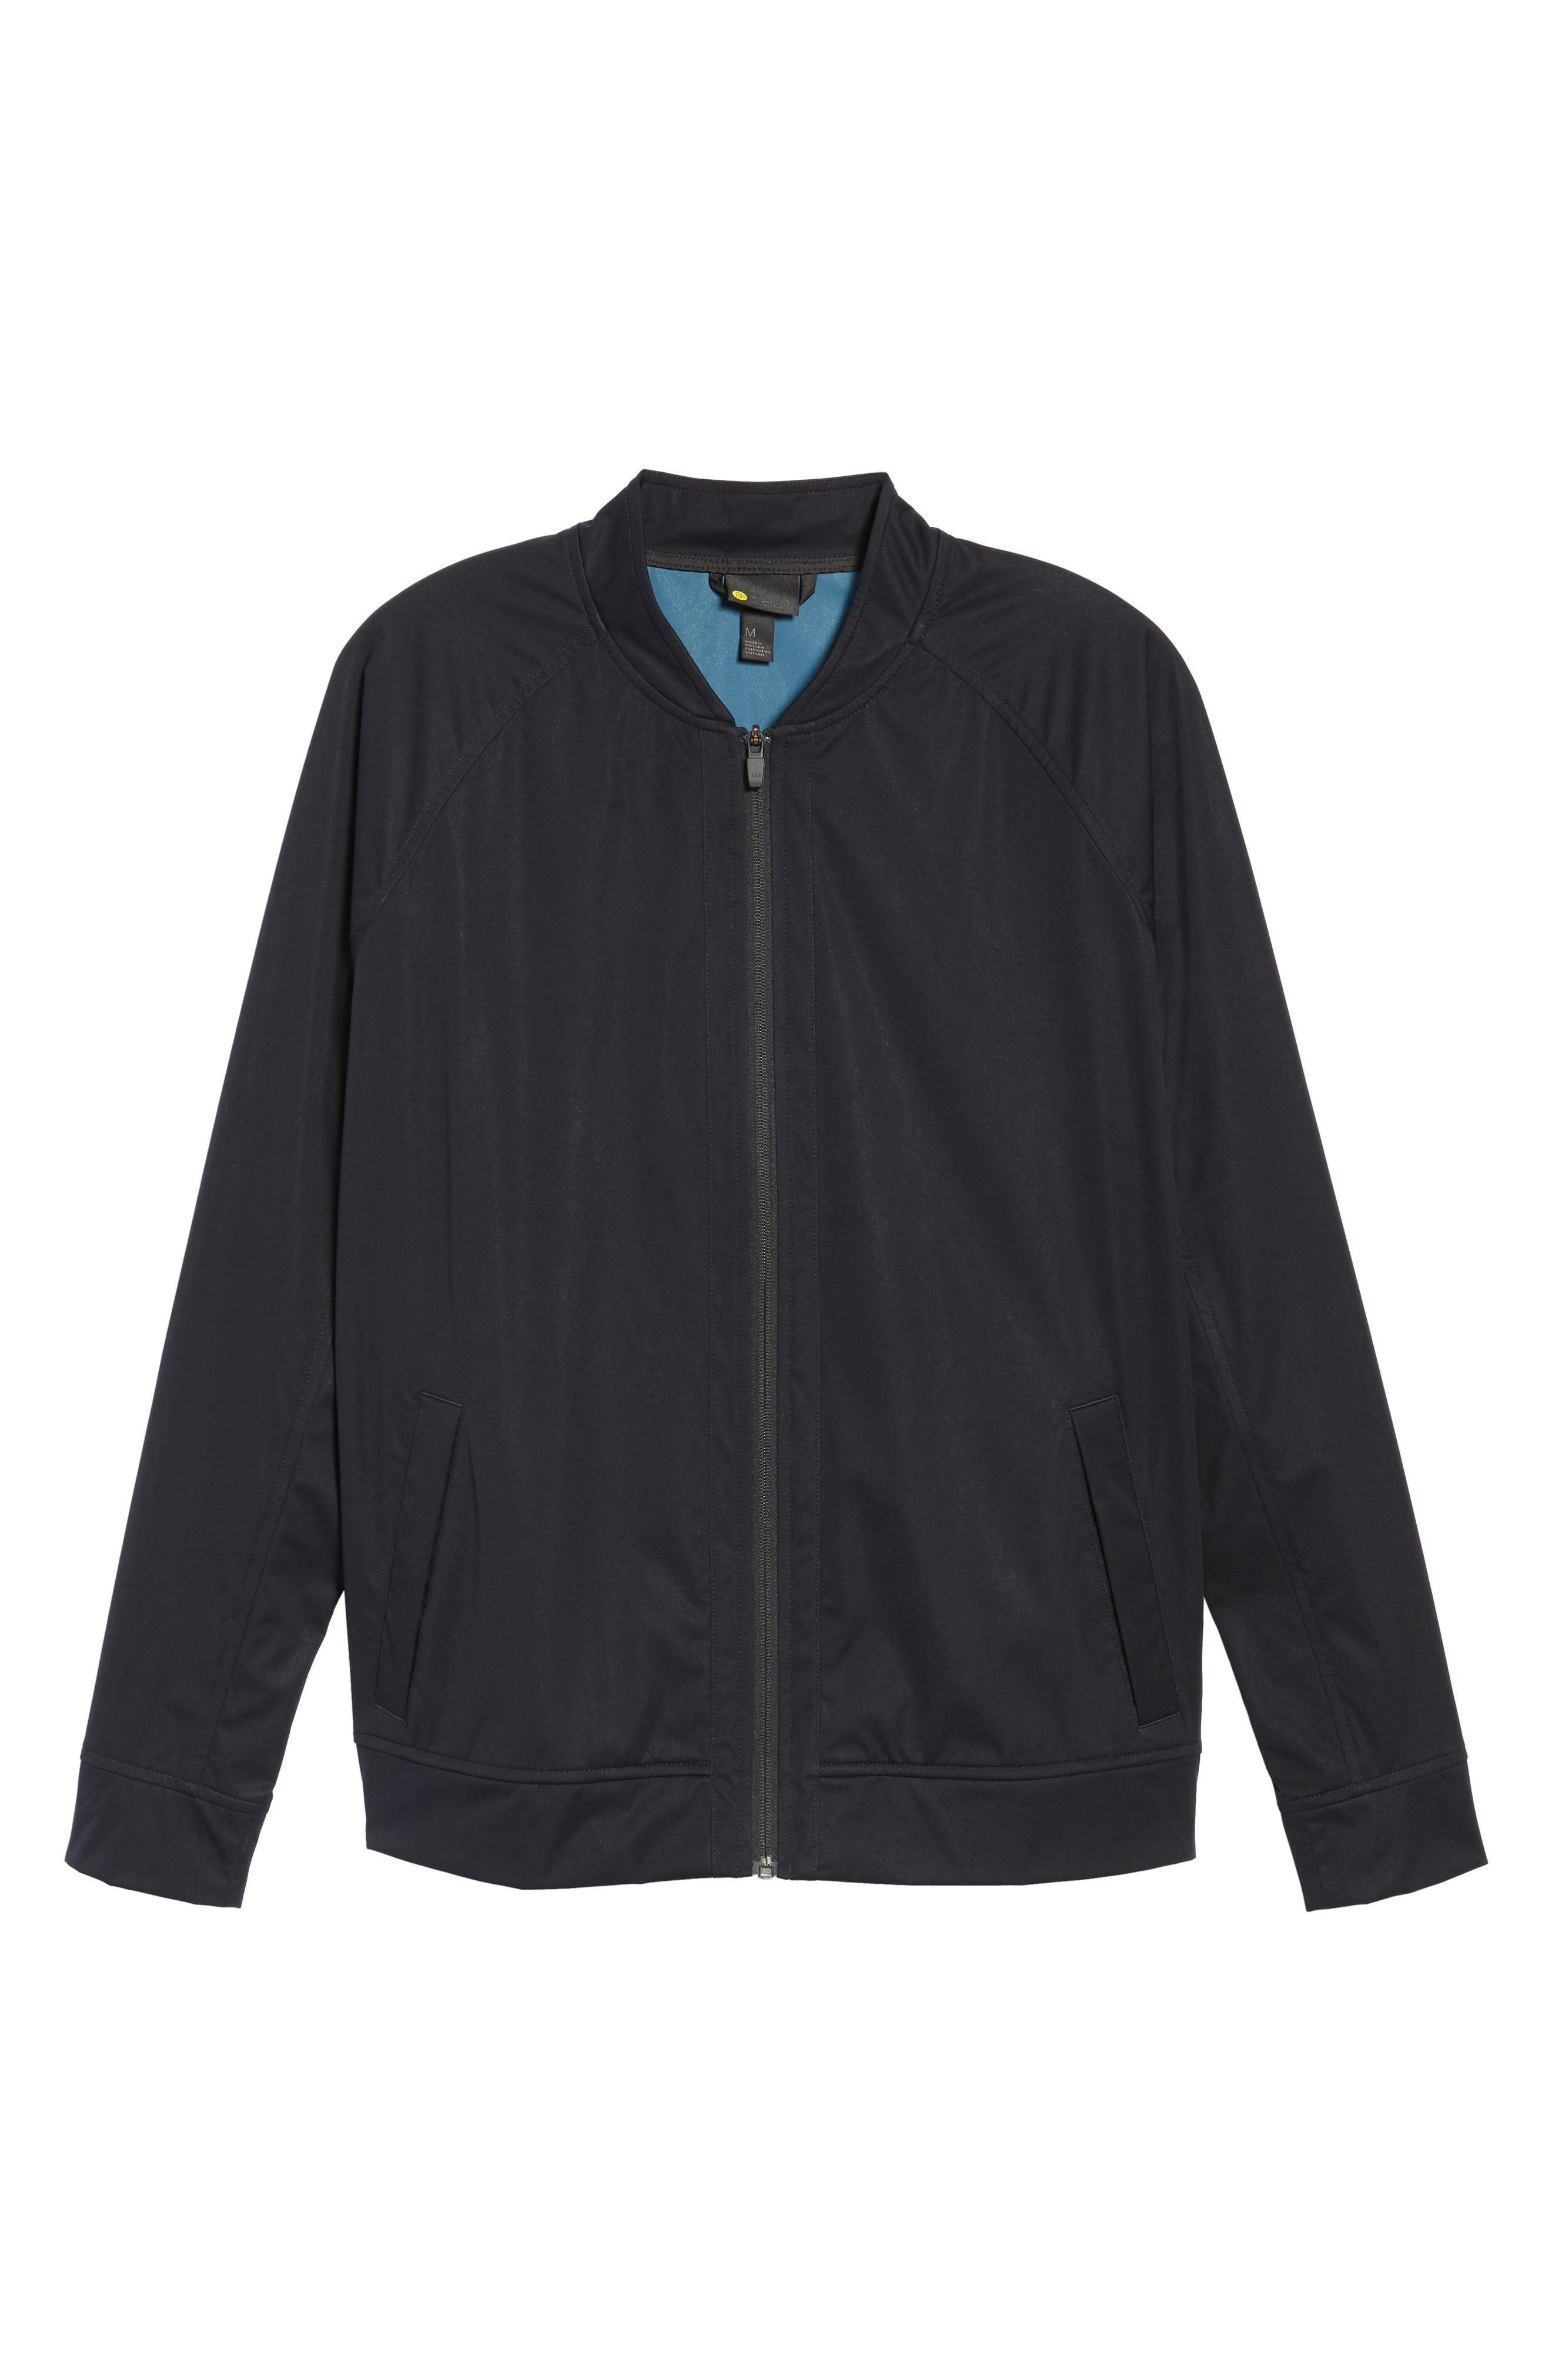 Softshell Bomber Jacket,                             Alternate thumbnail 6, color,                             Black